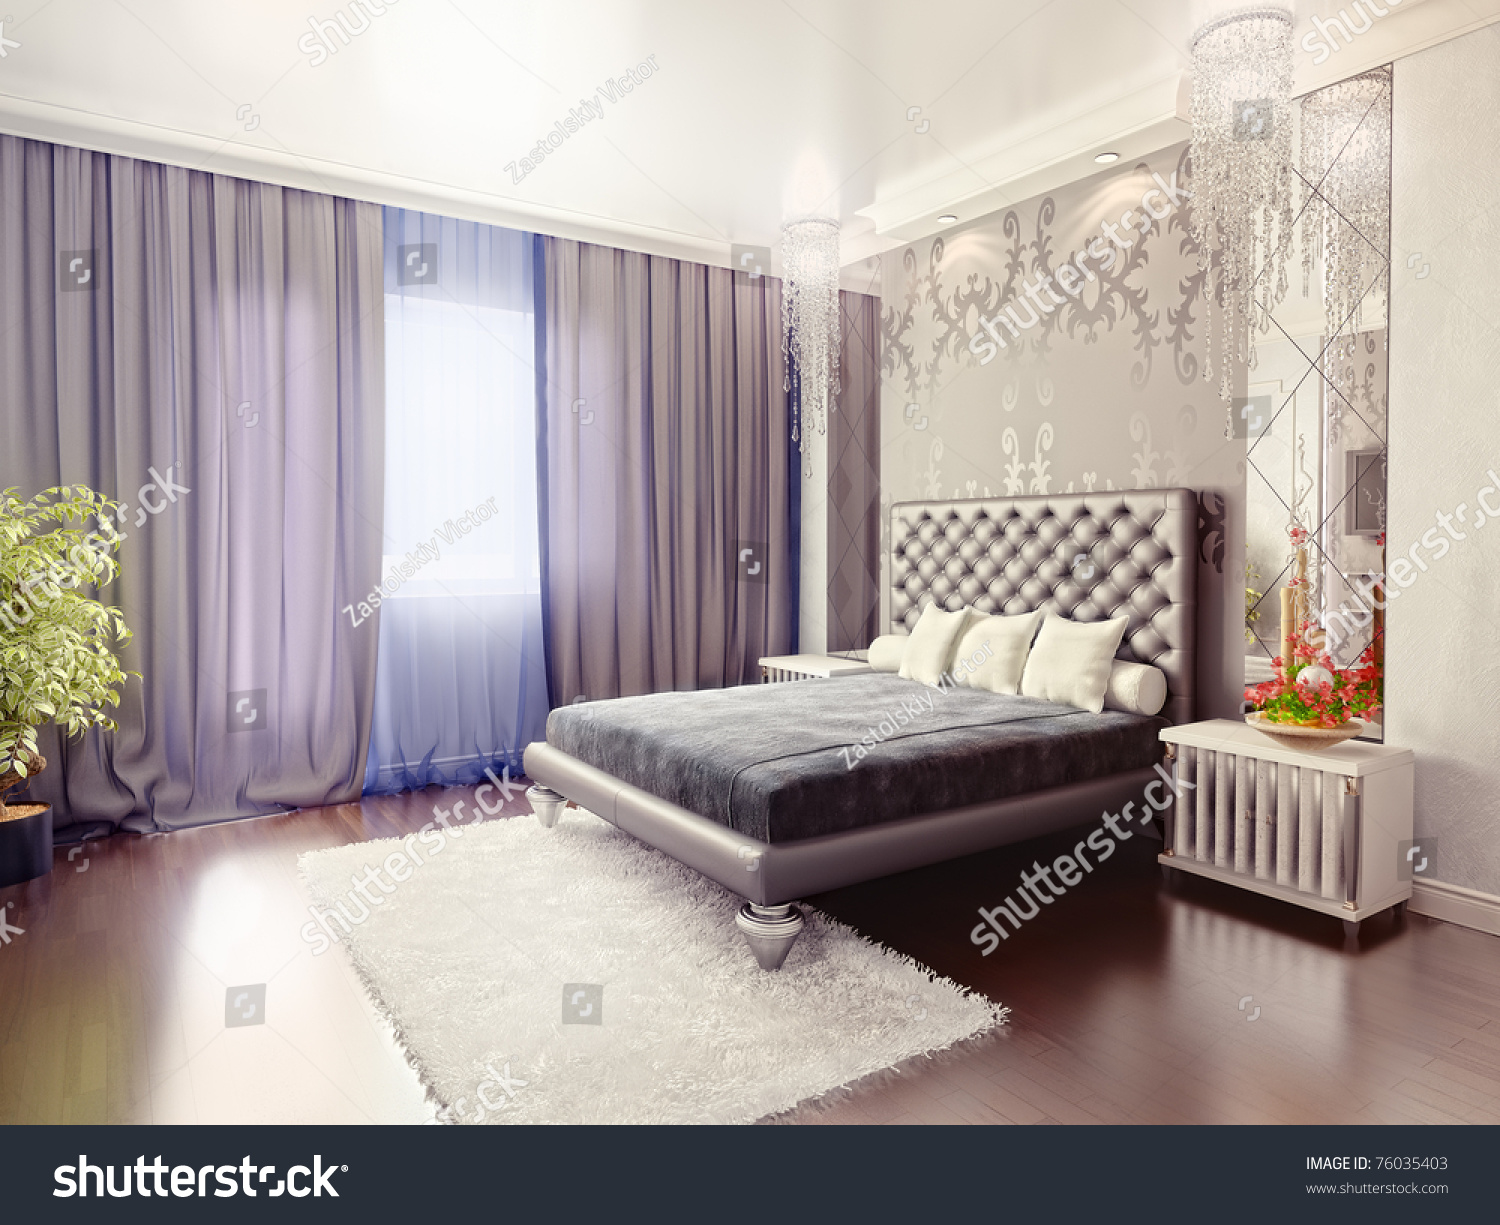 Luxury Bedroom Interior Modern Luxury Bedroom Interior 3d Rendering Stock Illustration